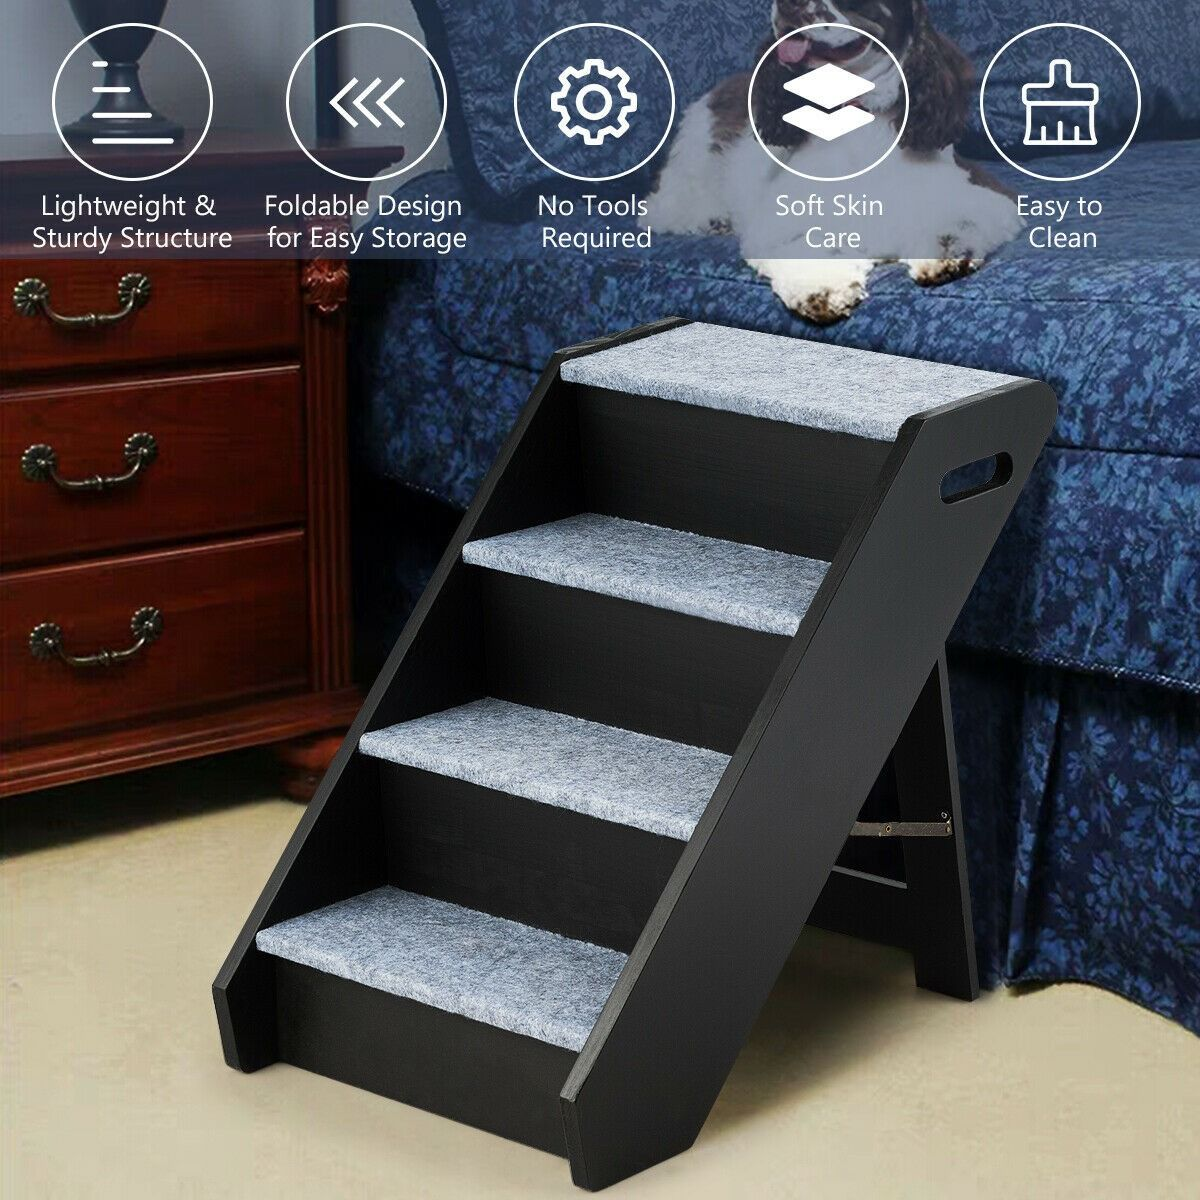 4 Step Wooden Ramp Carpeted Pet Stairs With Handle Pet Stairs Wooden Ramp Pets